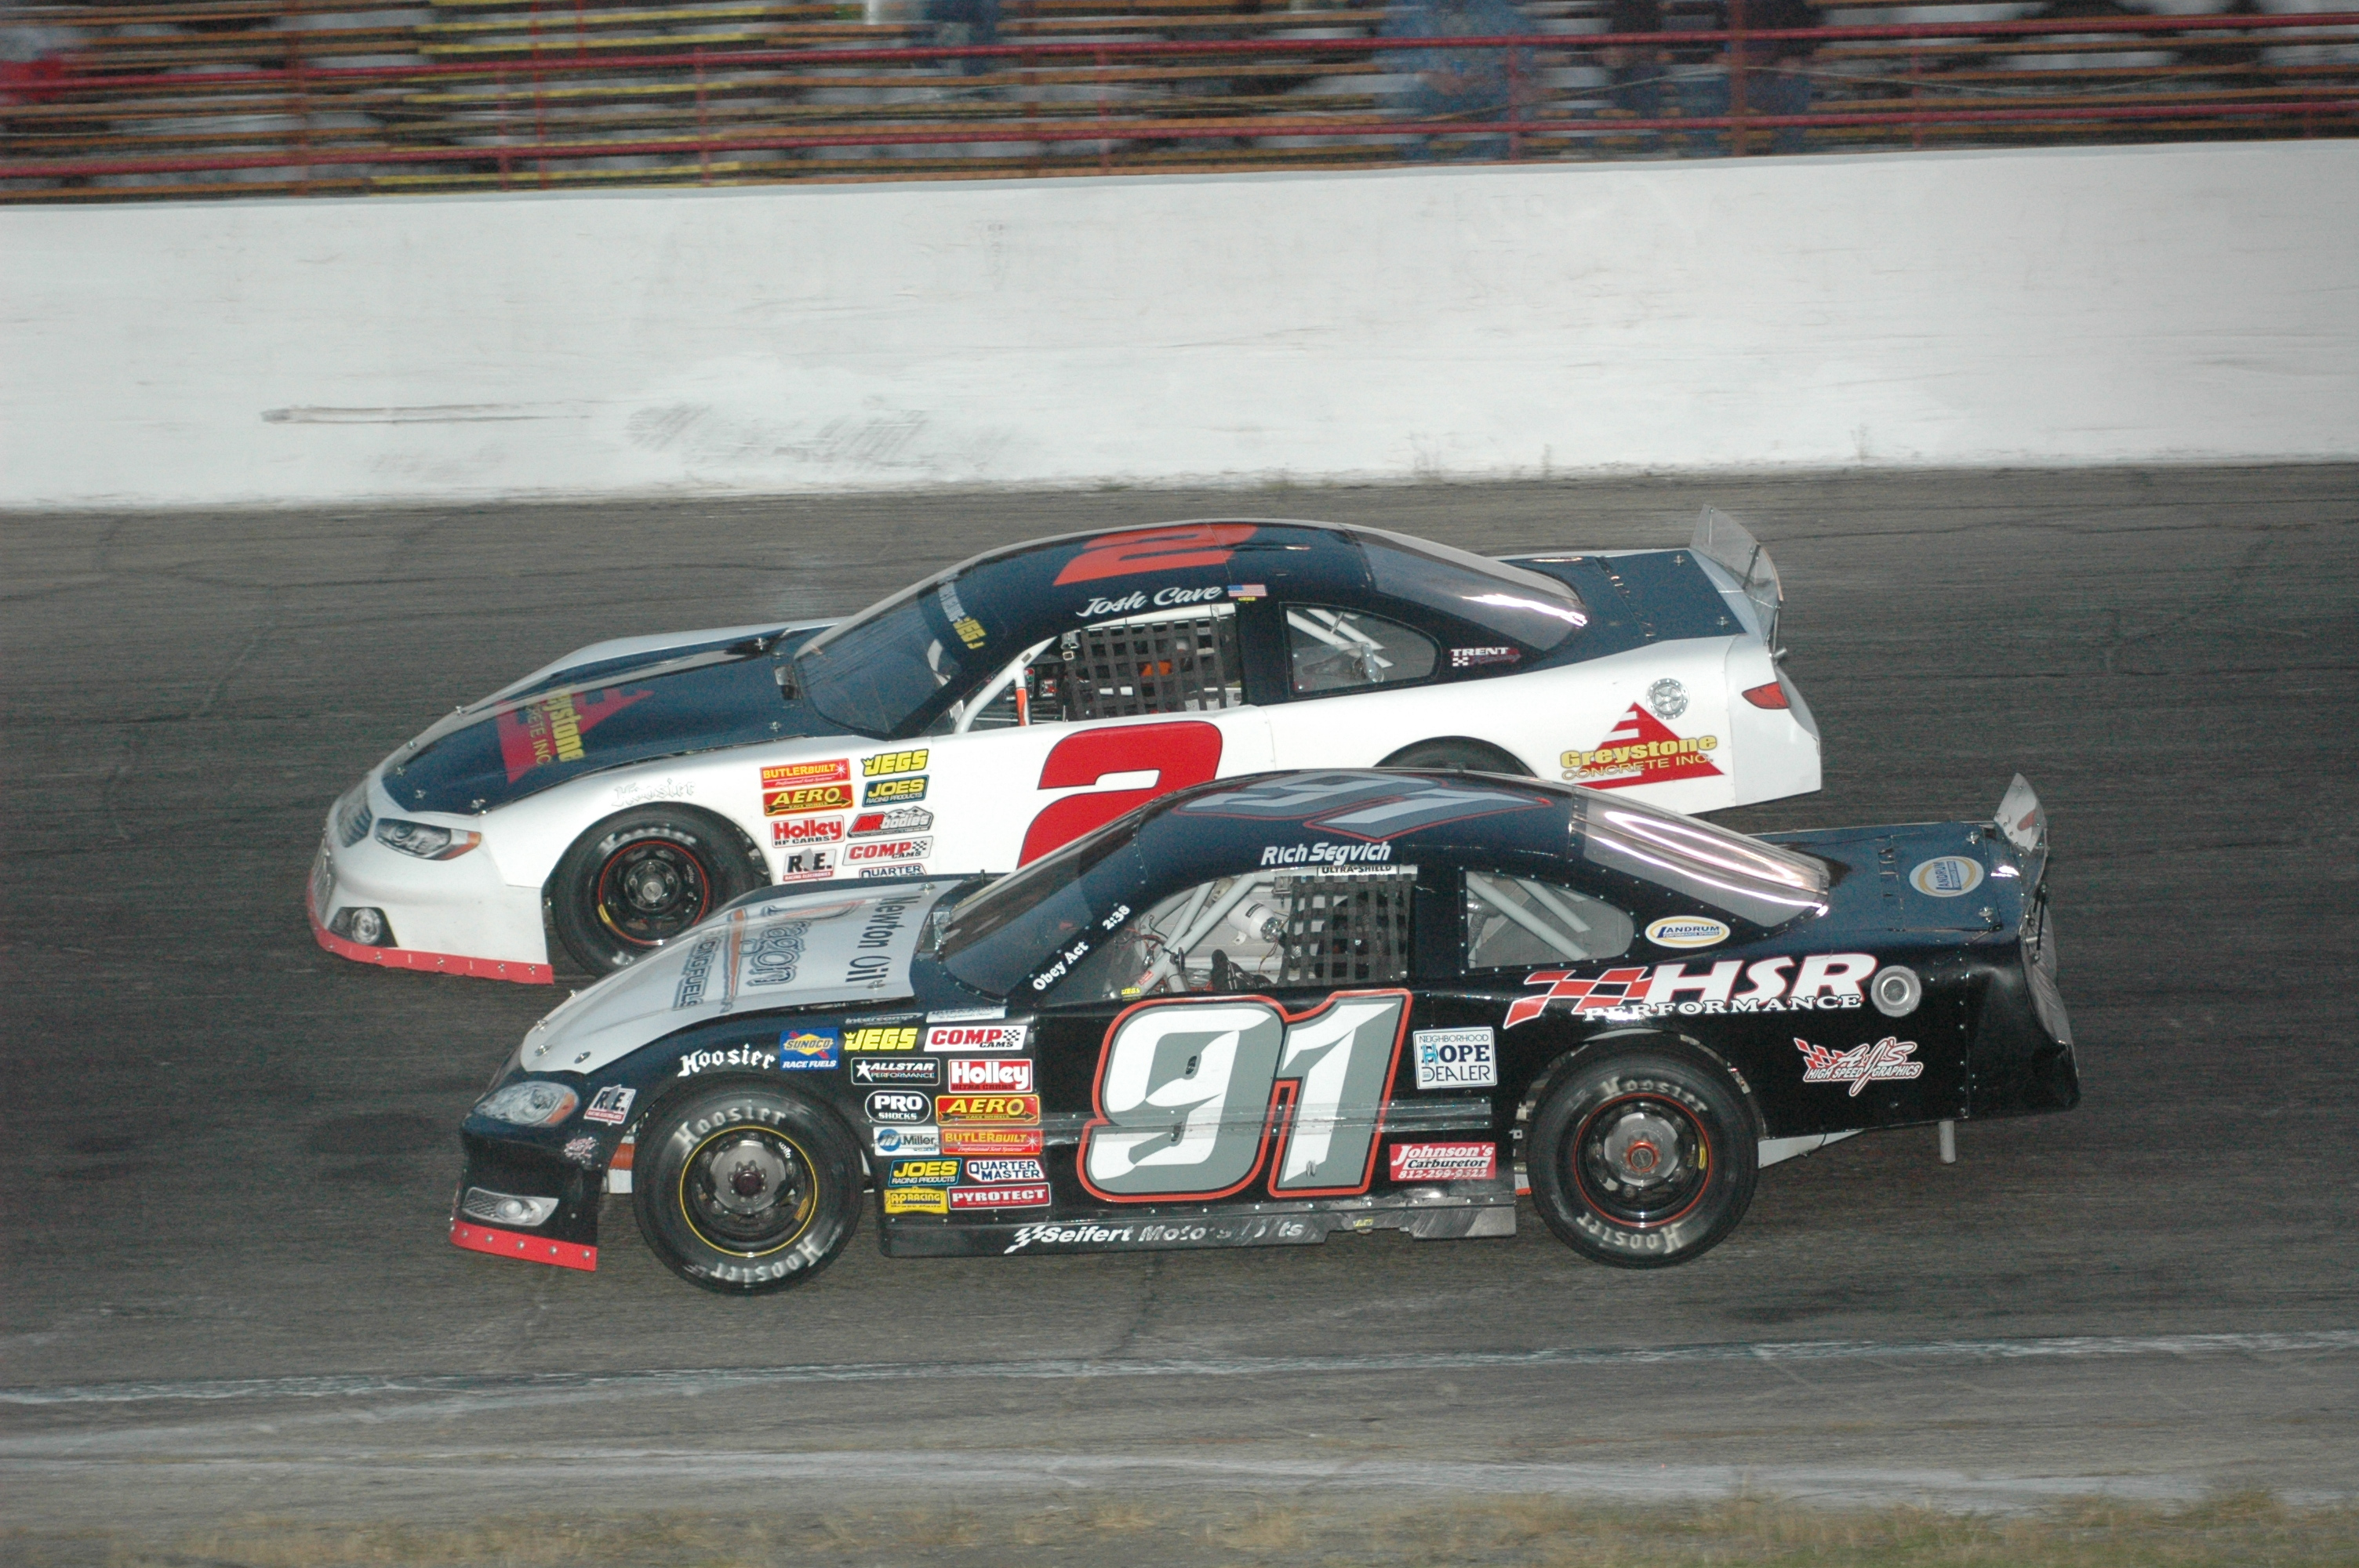 The Champion Racing Association Sportsman Late Models will be making their final appearance of 2017 at Anderson Speedway this Saturday in the Concentrix ...